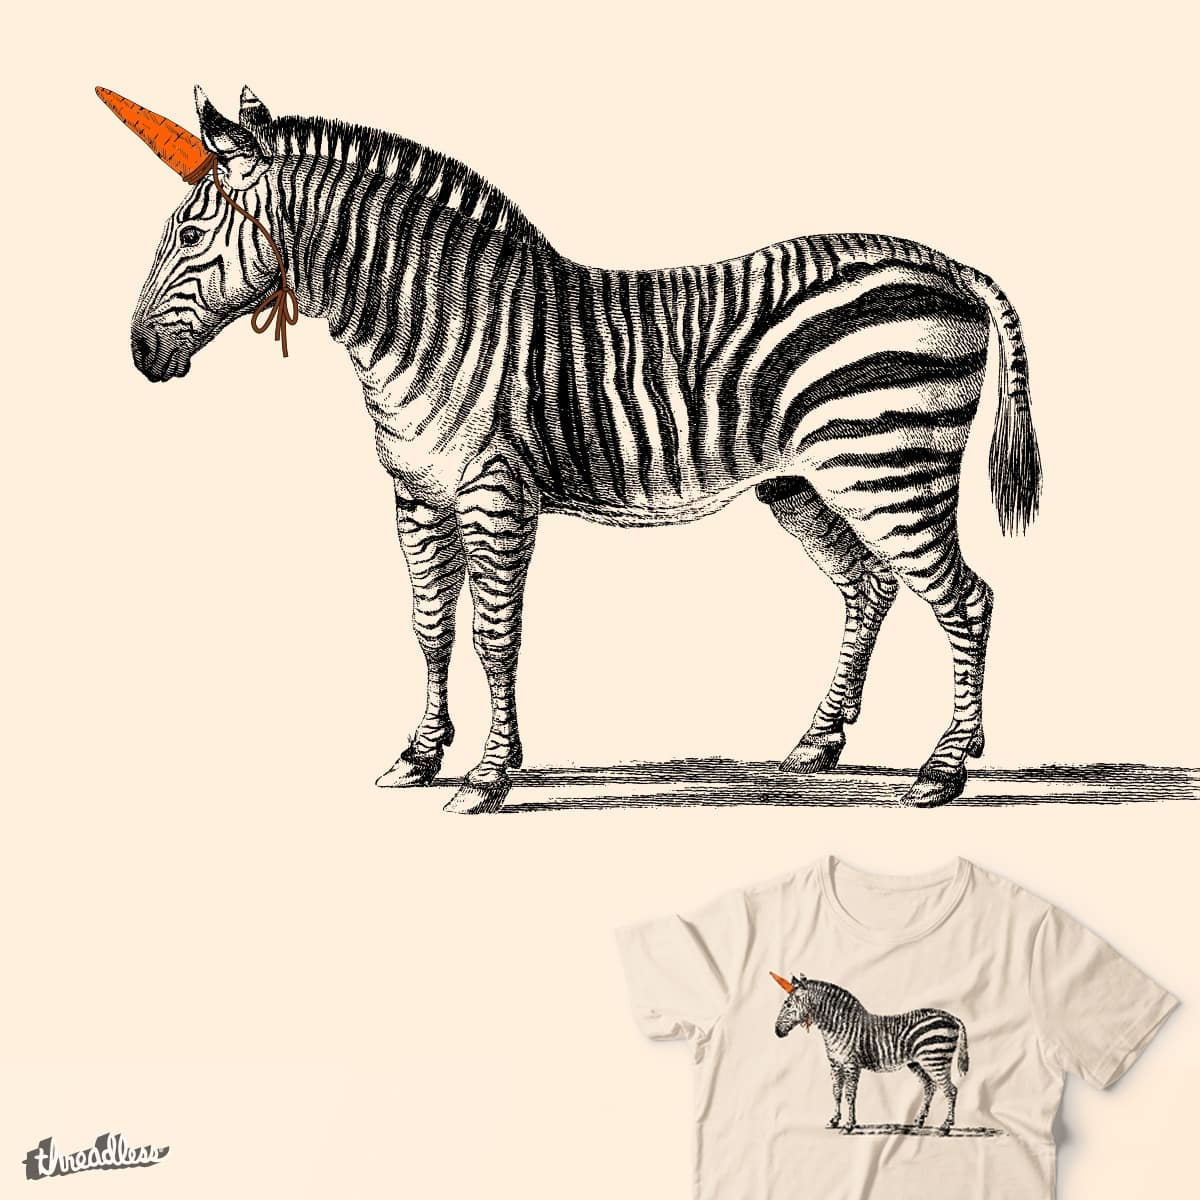 score unic horn by neilwtf on threadless